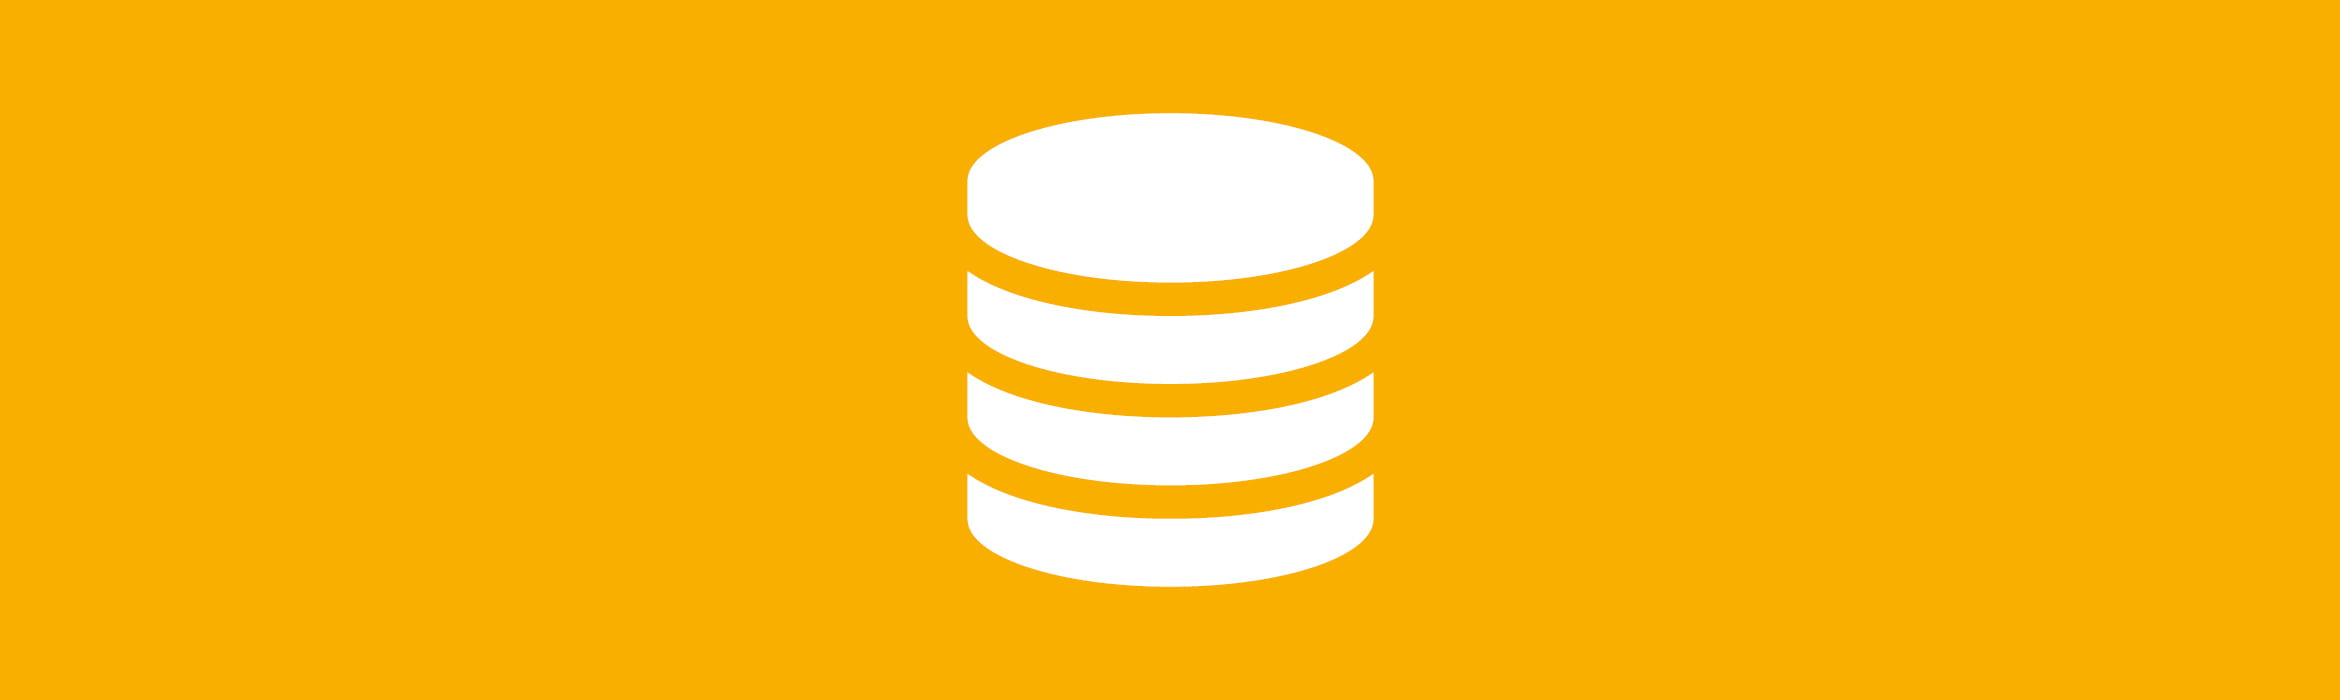 white money coins stack sign icon against an amber background